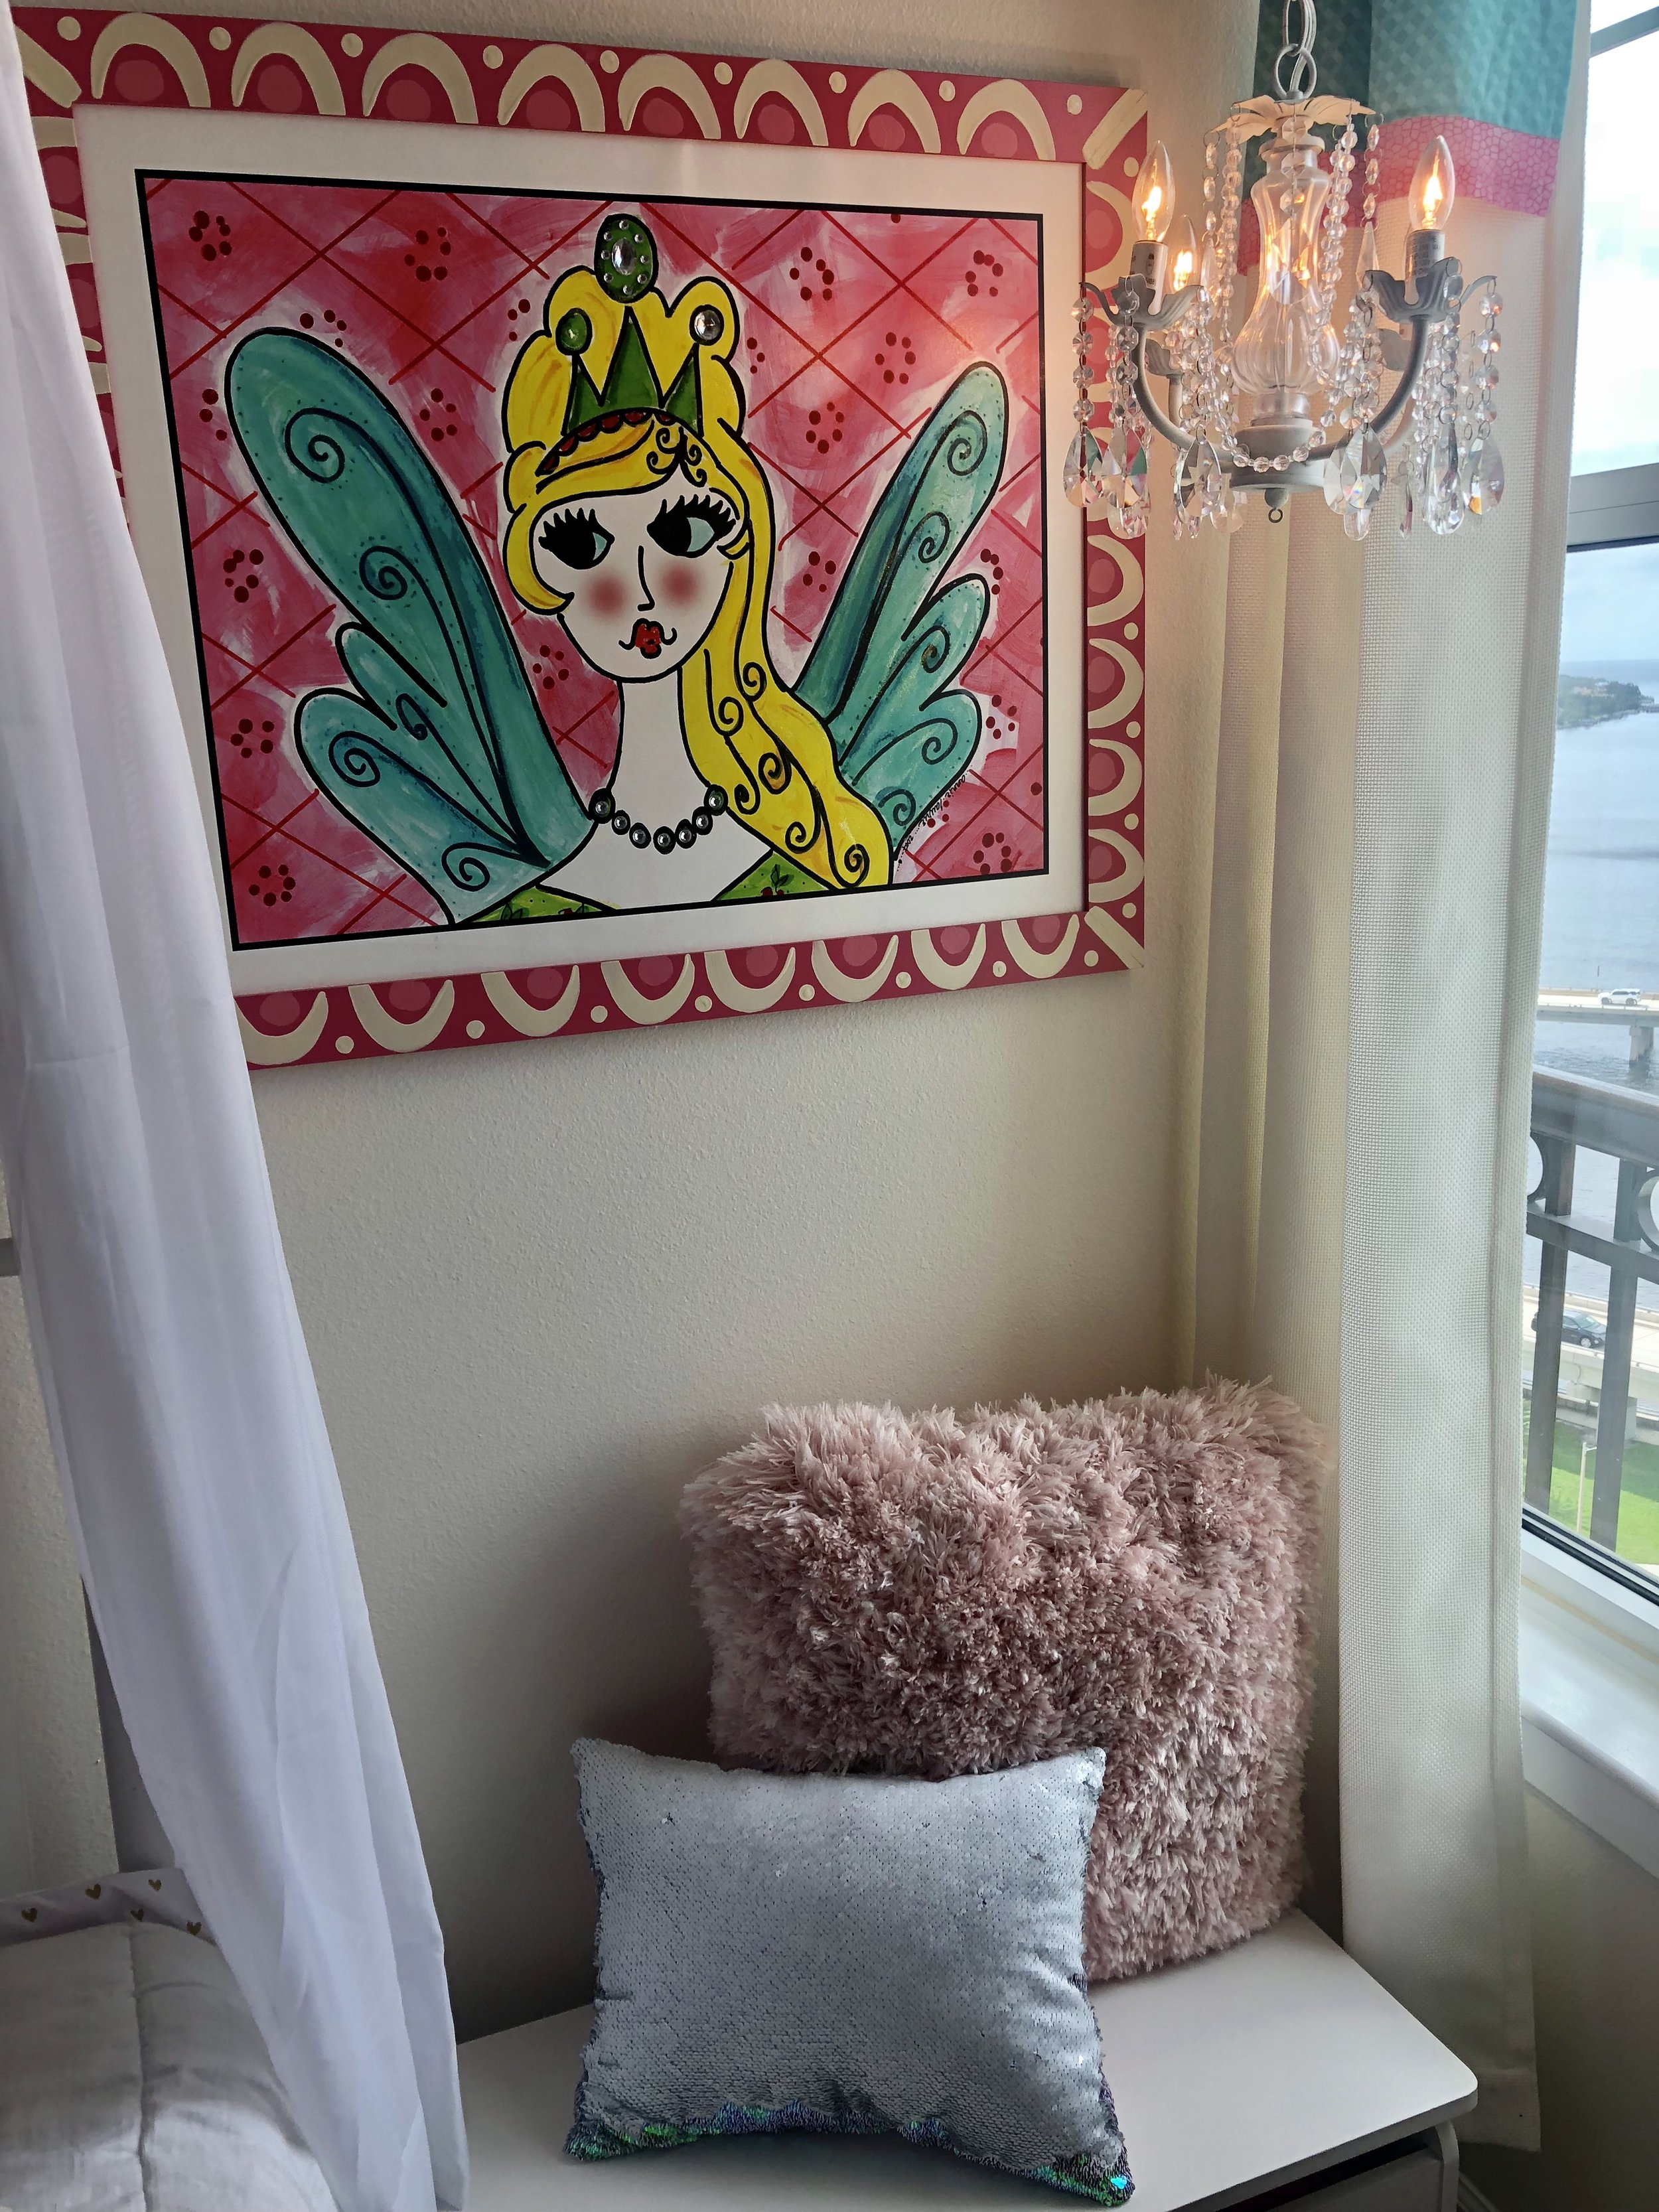 Mila's reading nook - Pillows from HomeGoods